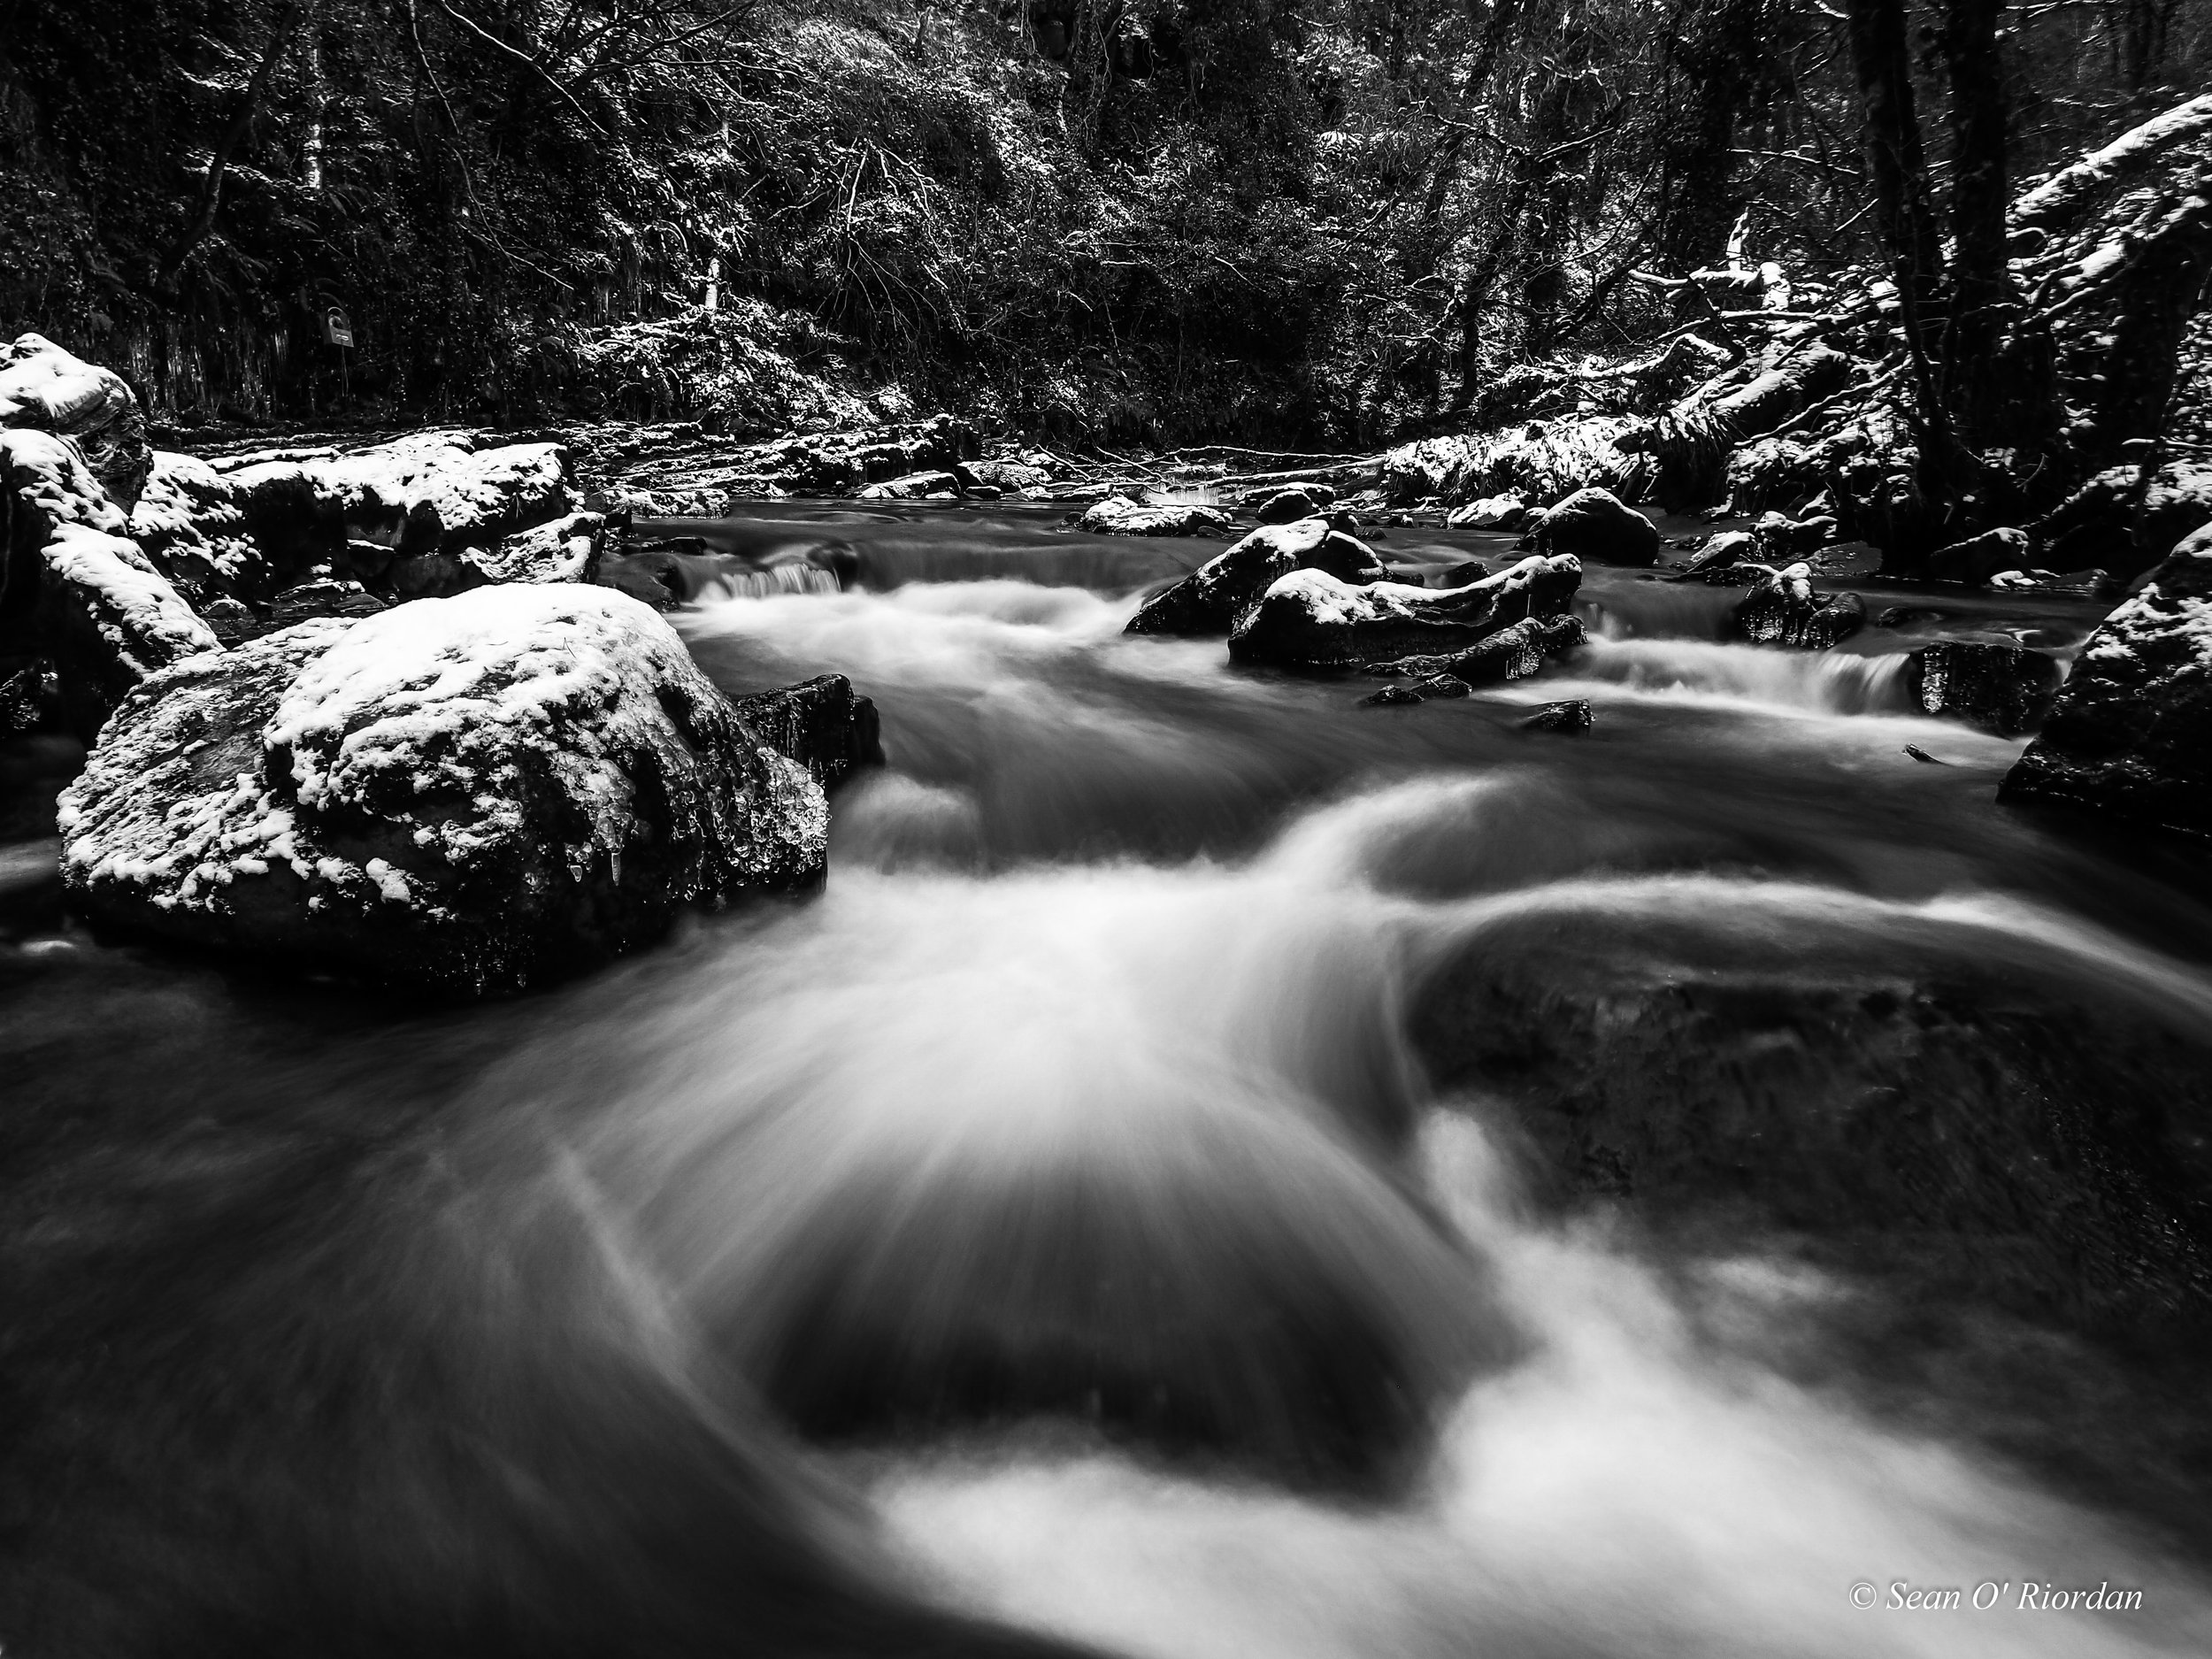 """2"""" Shutter Speed shot handheld with a 4 Stop ND Filter."""